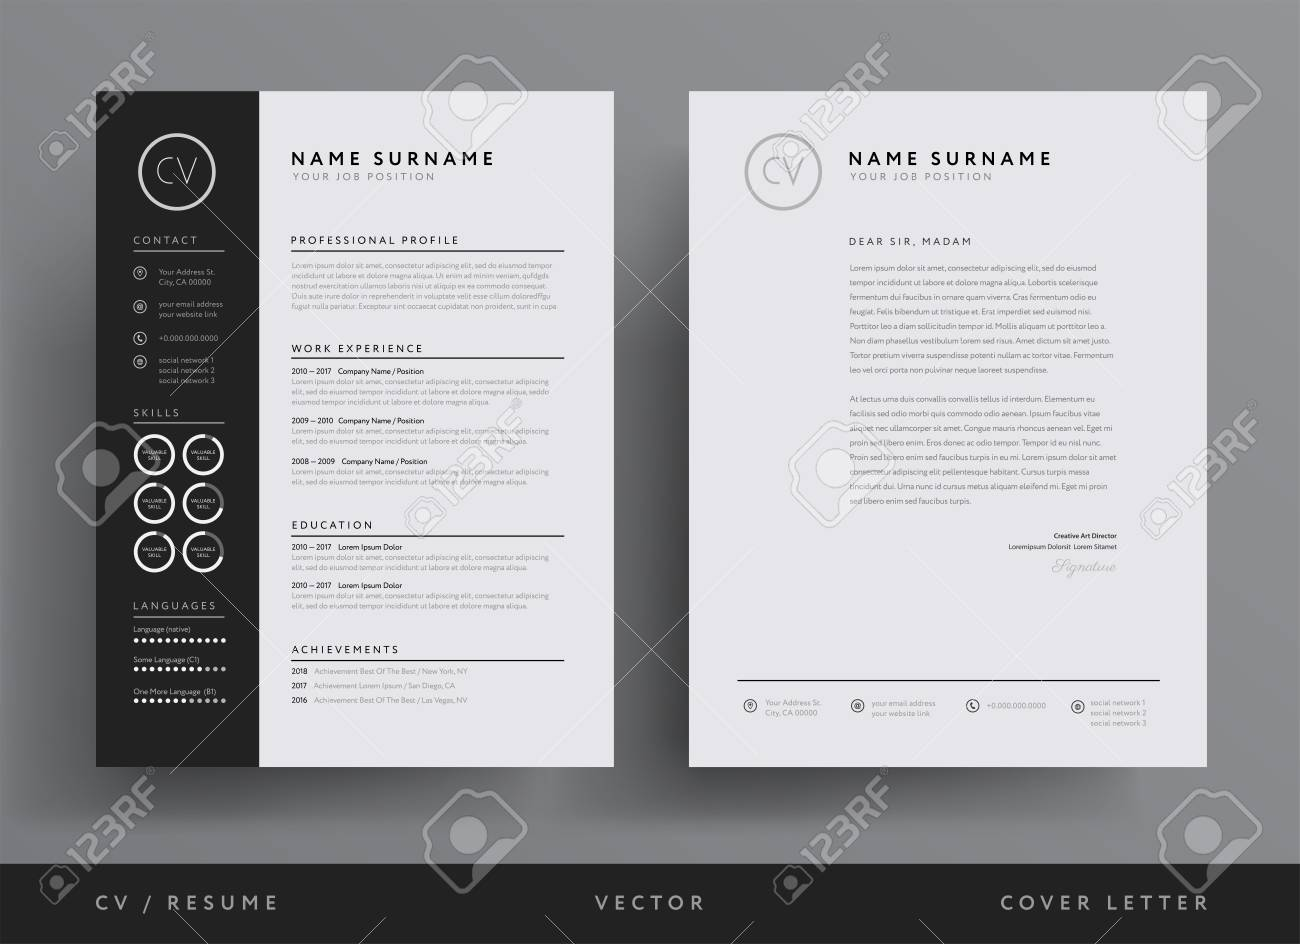 Professional Resume And Letterhead Template Design Royalty Free